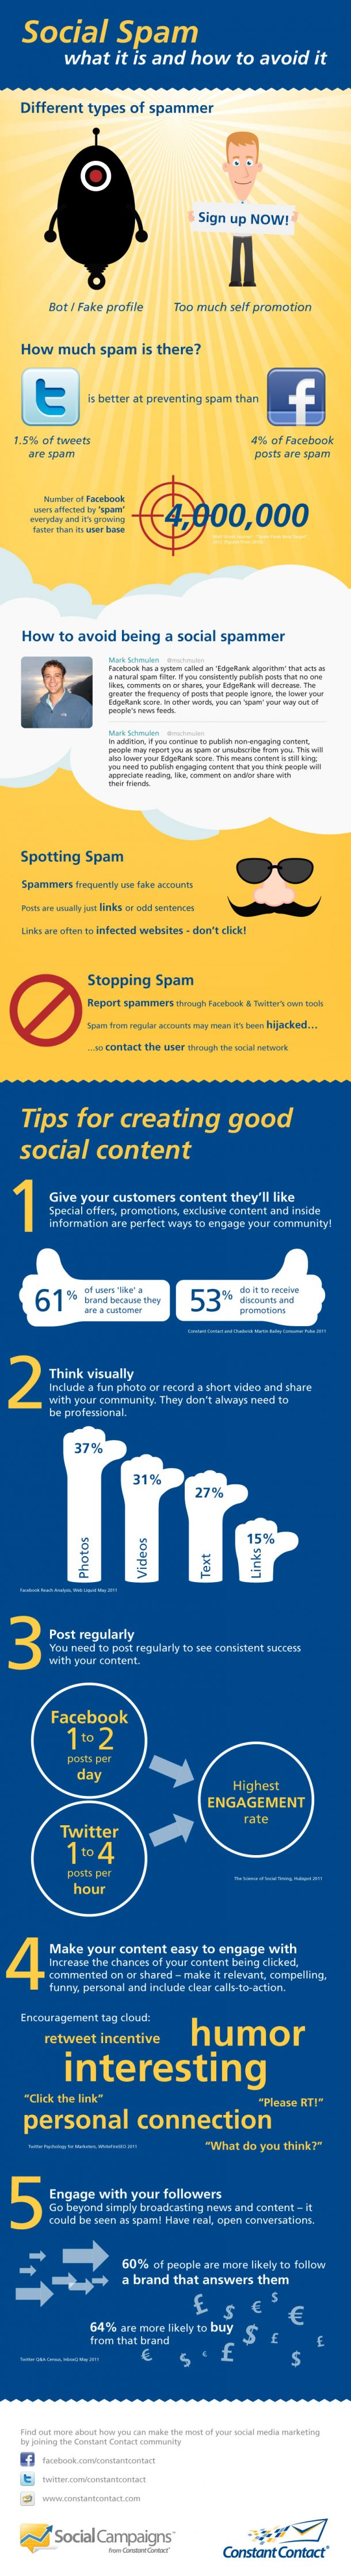 What is Social Spam? (And How to Avoid Creating It) [INFOGRAPHIC VIA @constantcontact]